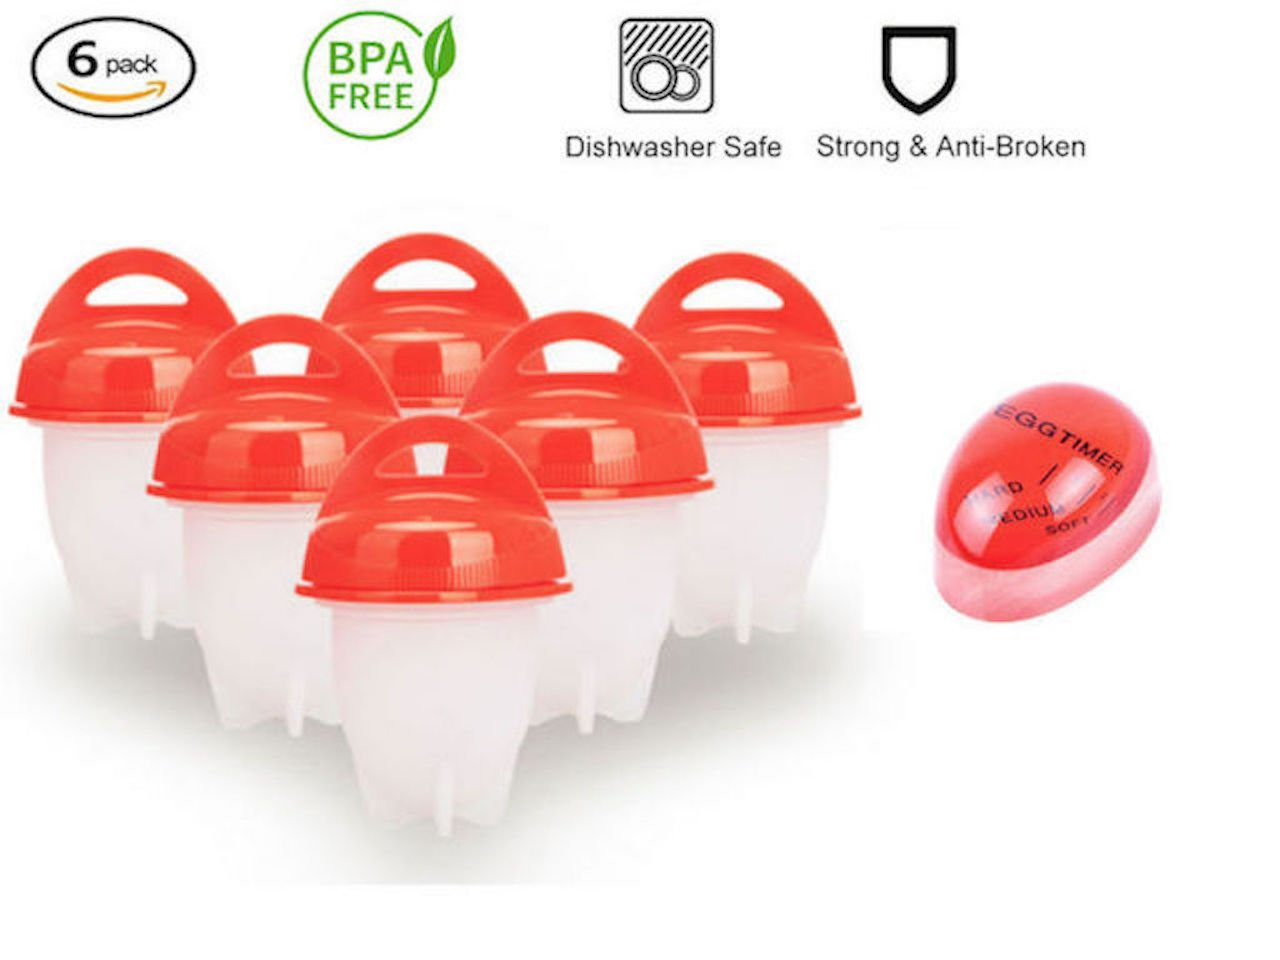 Egg Cooker- Hard Boiled Eggs Without The Shell & Soft Maker, BPA Free,Non Stick Silicone,Poacher,Steamer,Eggies AS SEEN ON TV (6PACK)+FREE Egg Timer (By TOP COOKERS). by Top Cookers